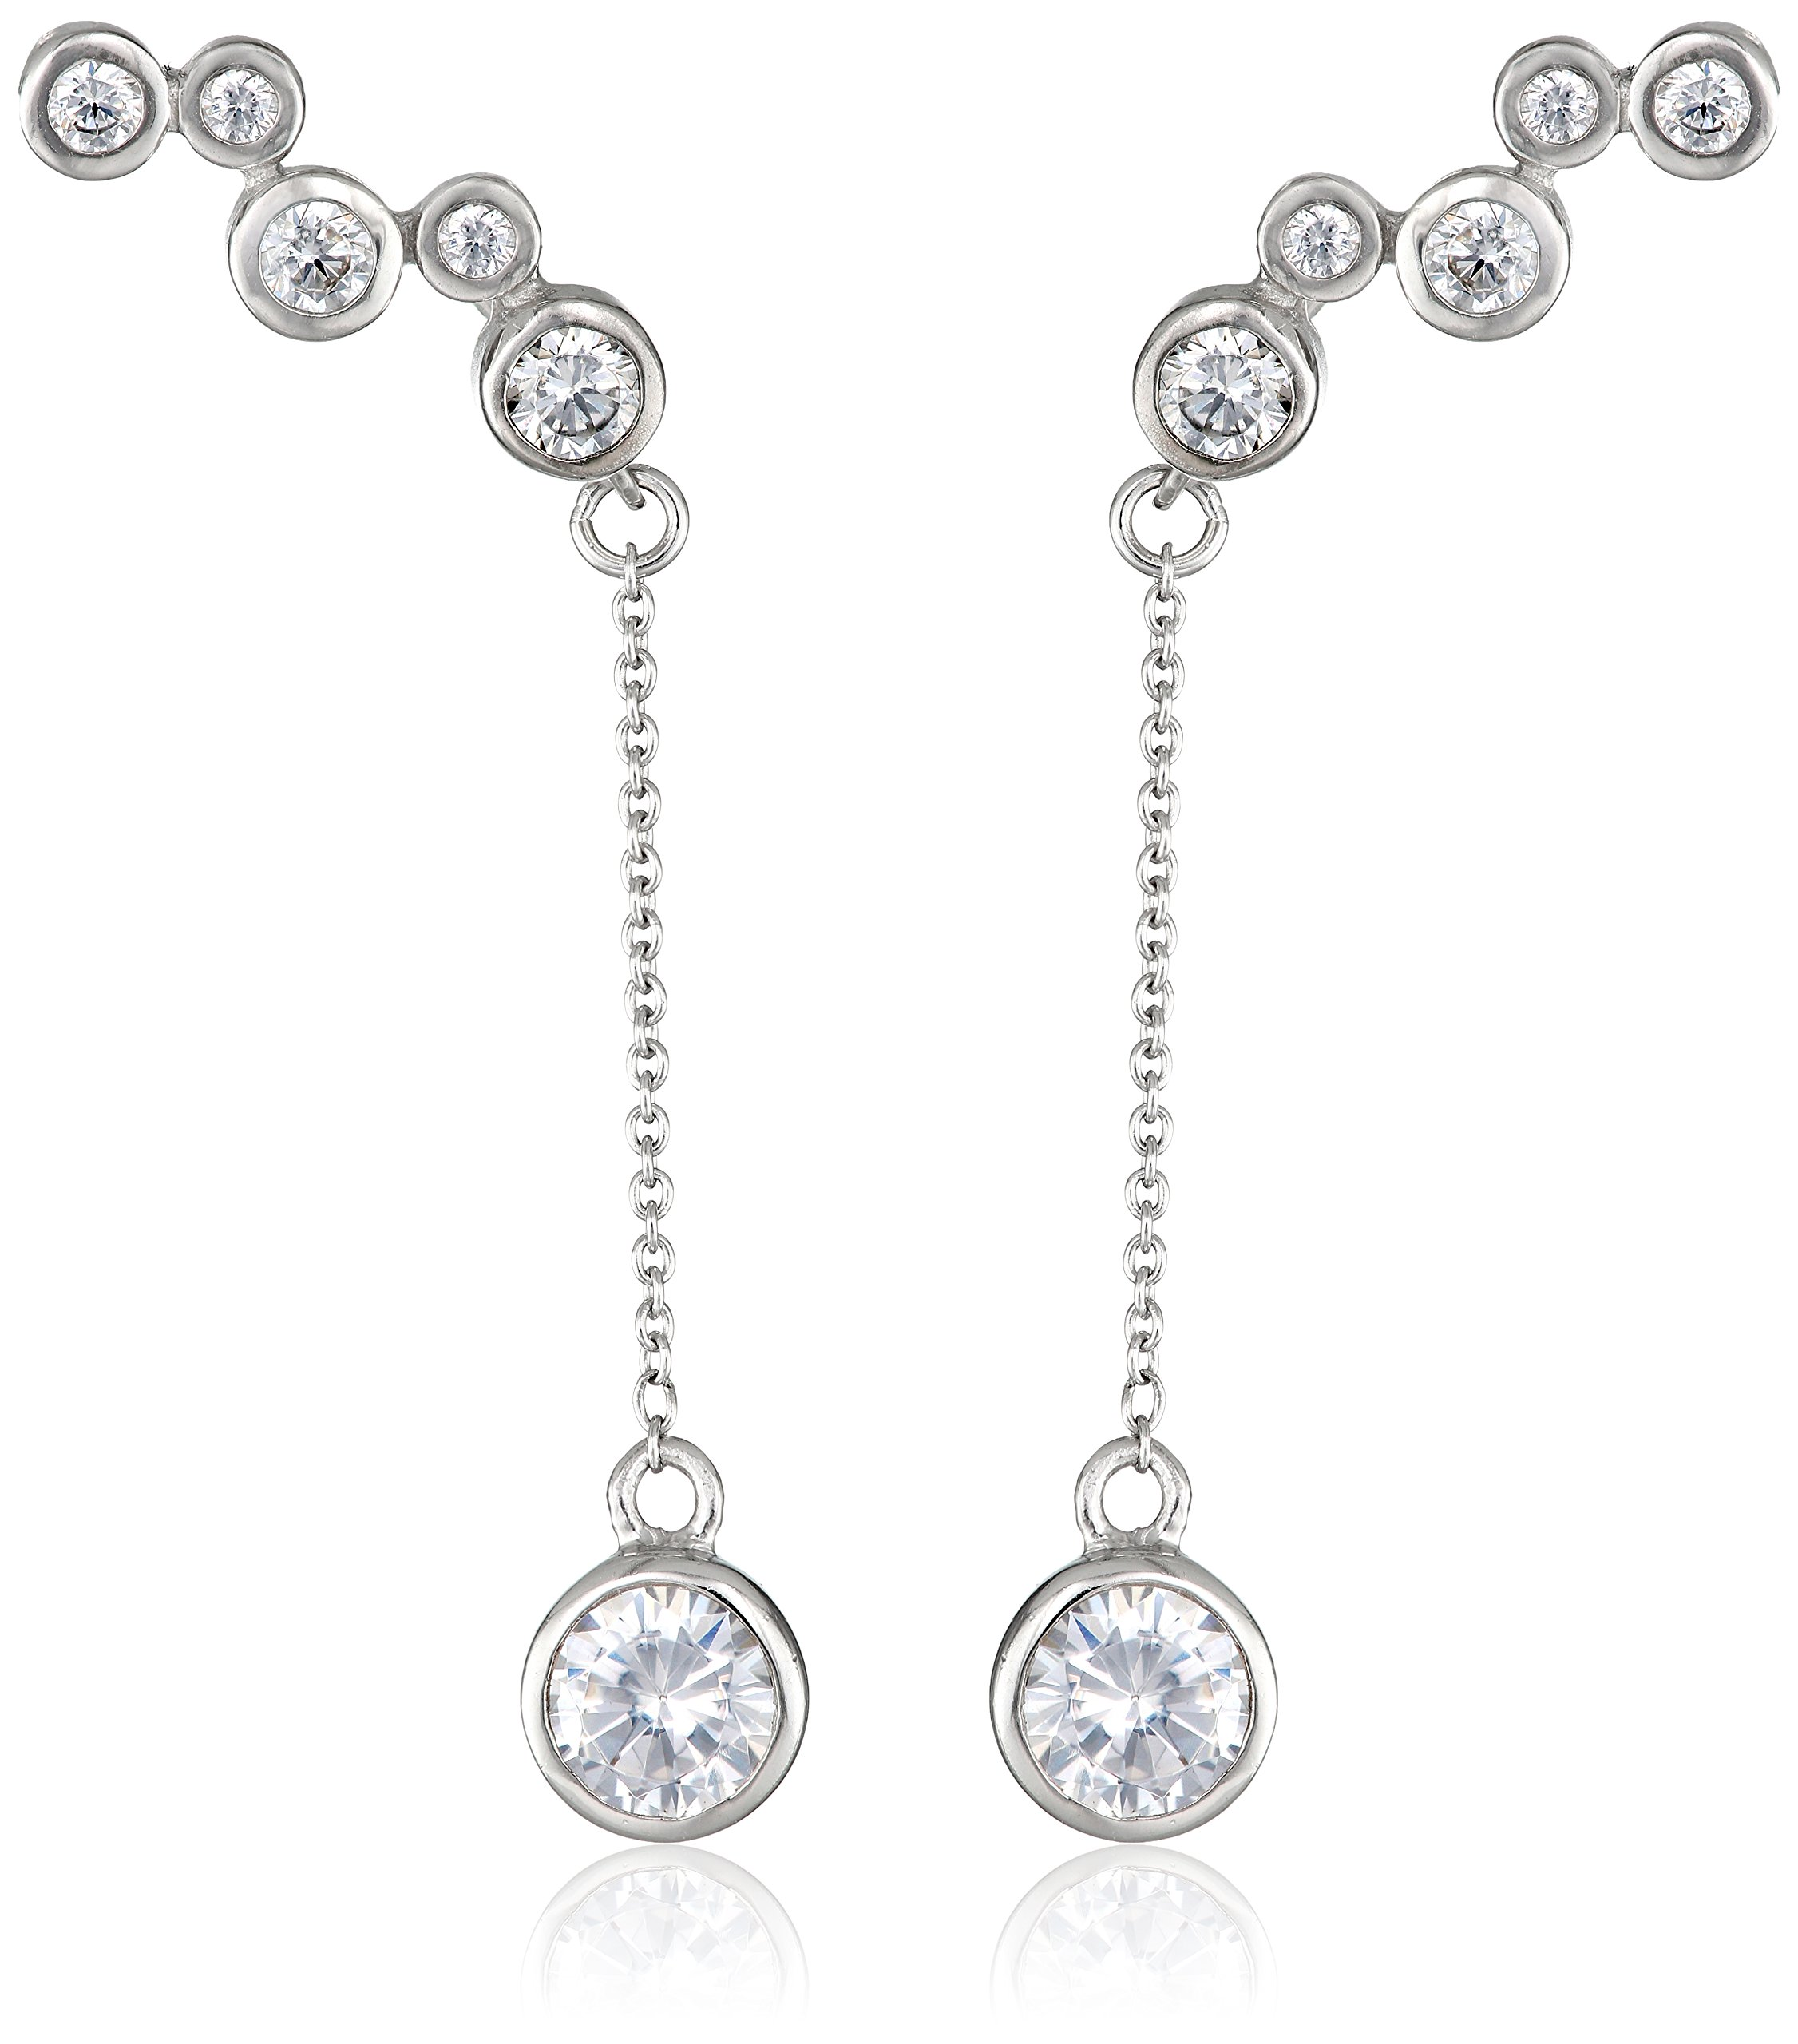 The Ear Pin Silver-Tone and Cubic Zirconia Interchangeable Enhancer Earrings